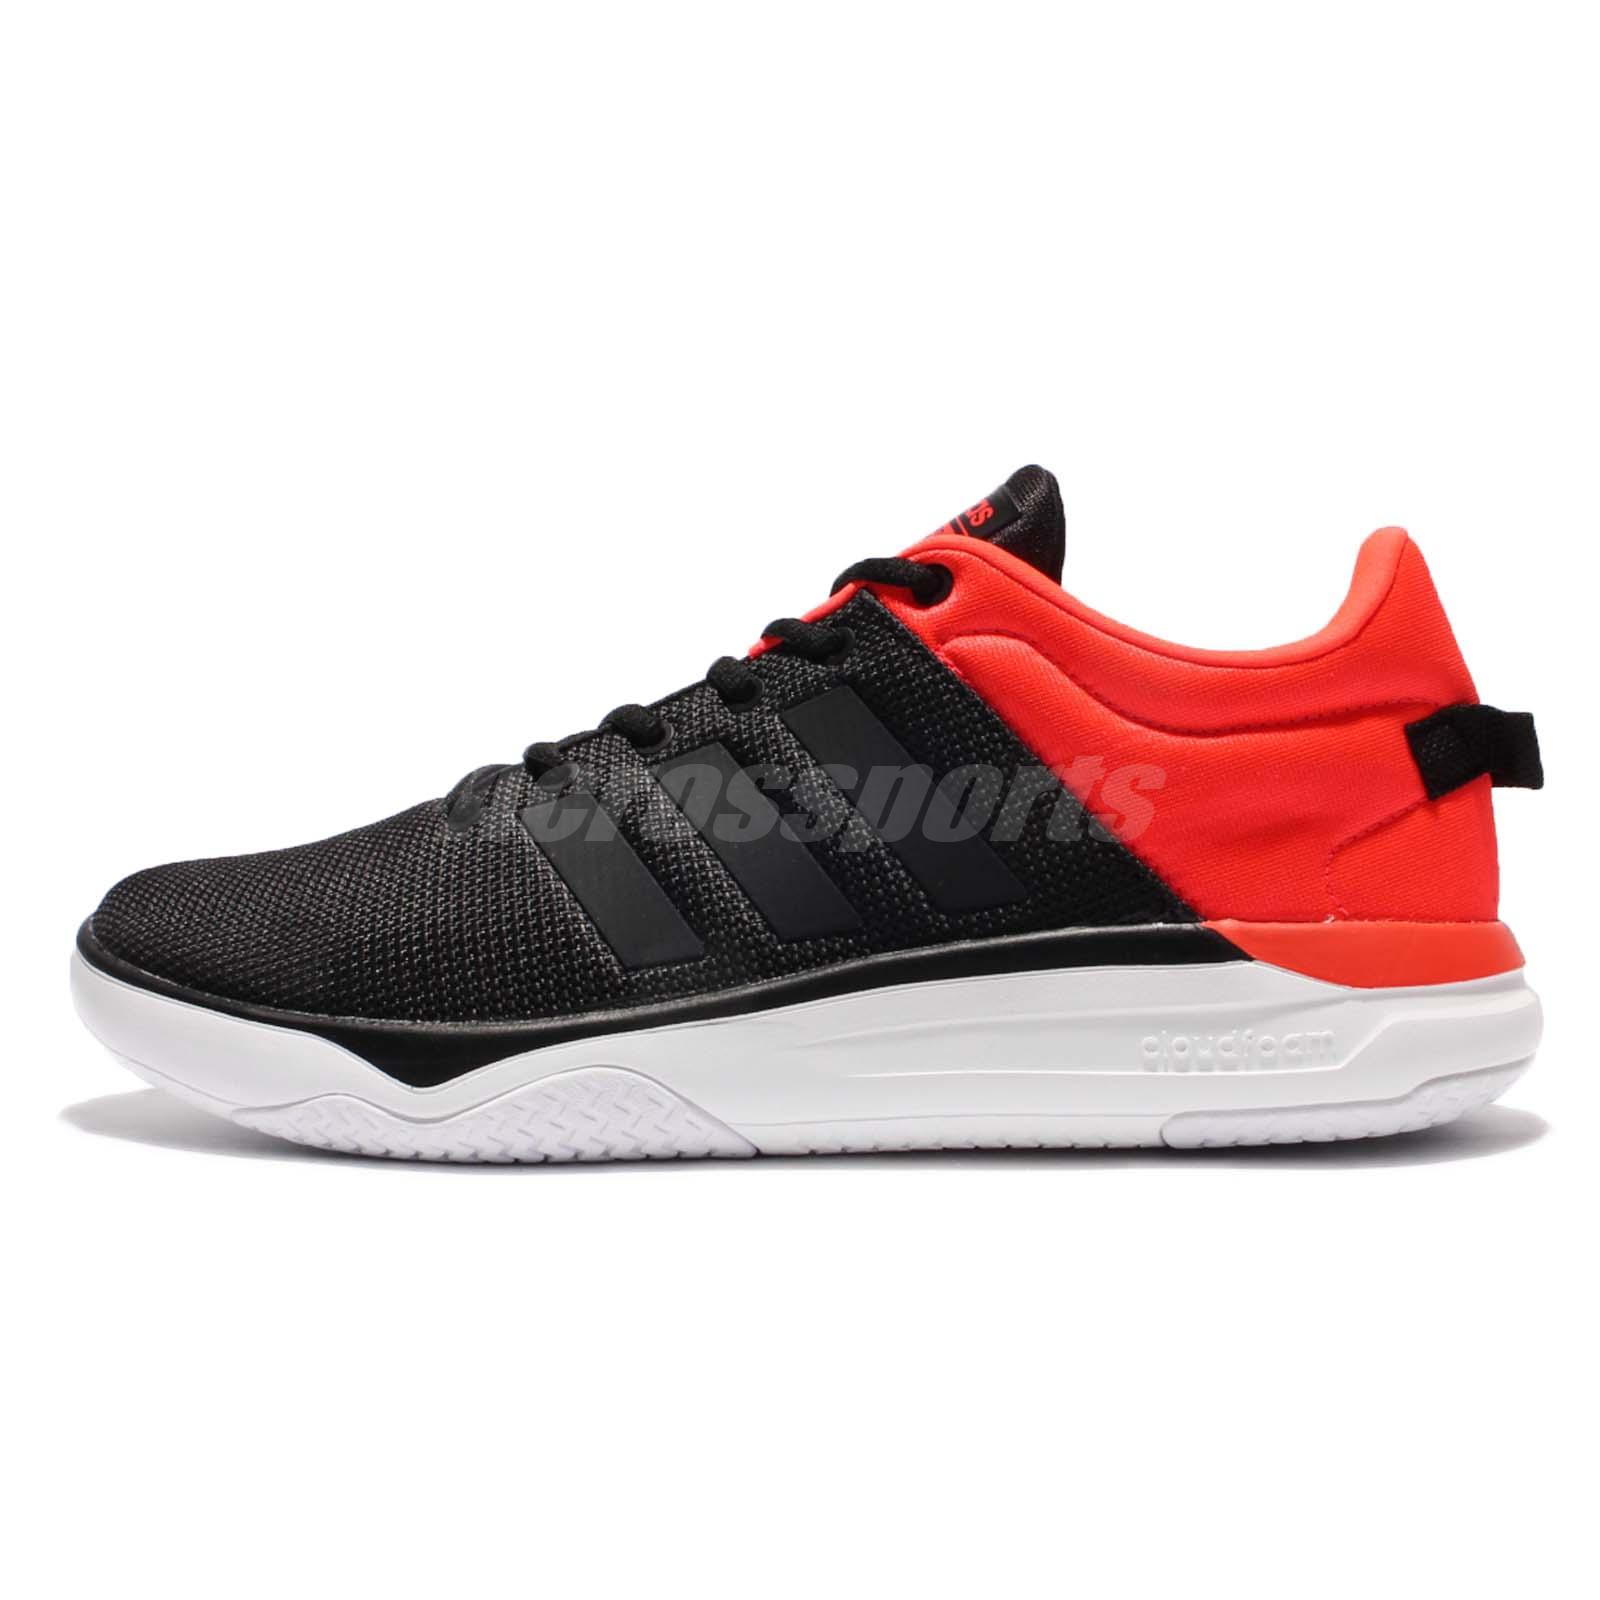 adidas Neo Label Cloudfoam Swish Black Red Men Running Shoes Sneakers AW4078